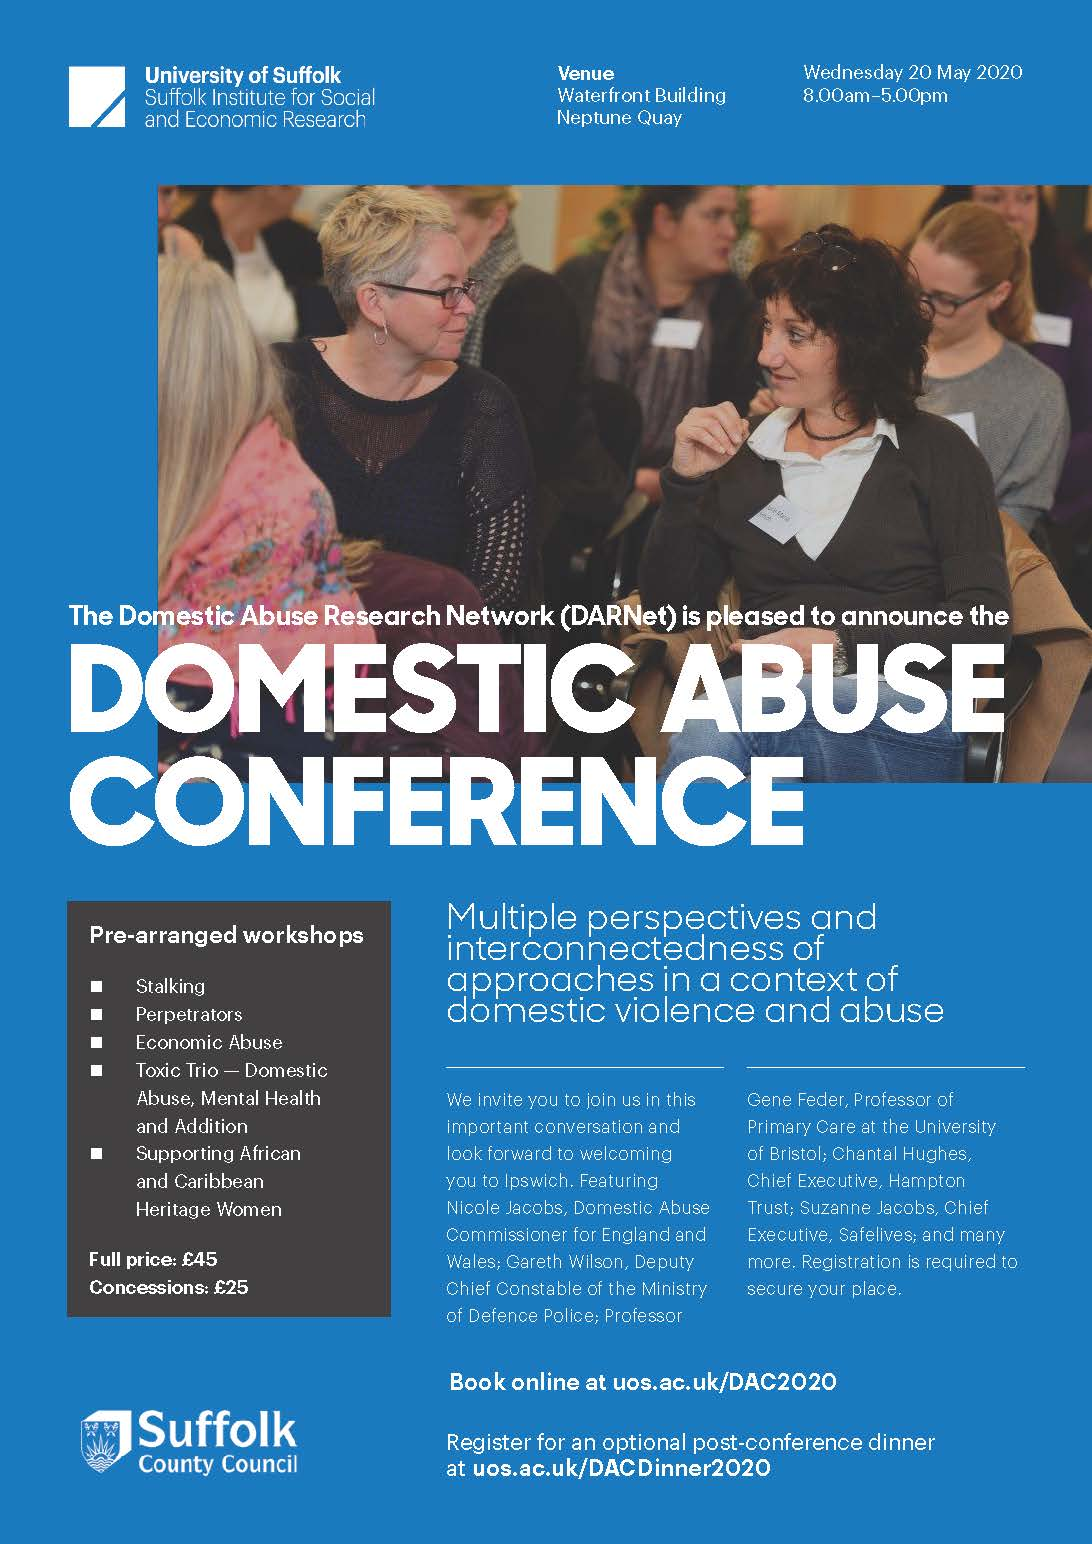 Domestic Abuse Conference 2020 A4 Flyer